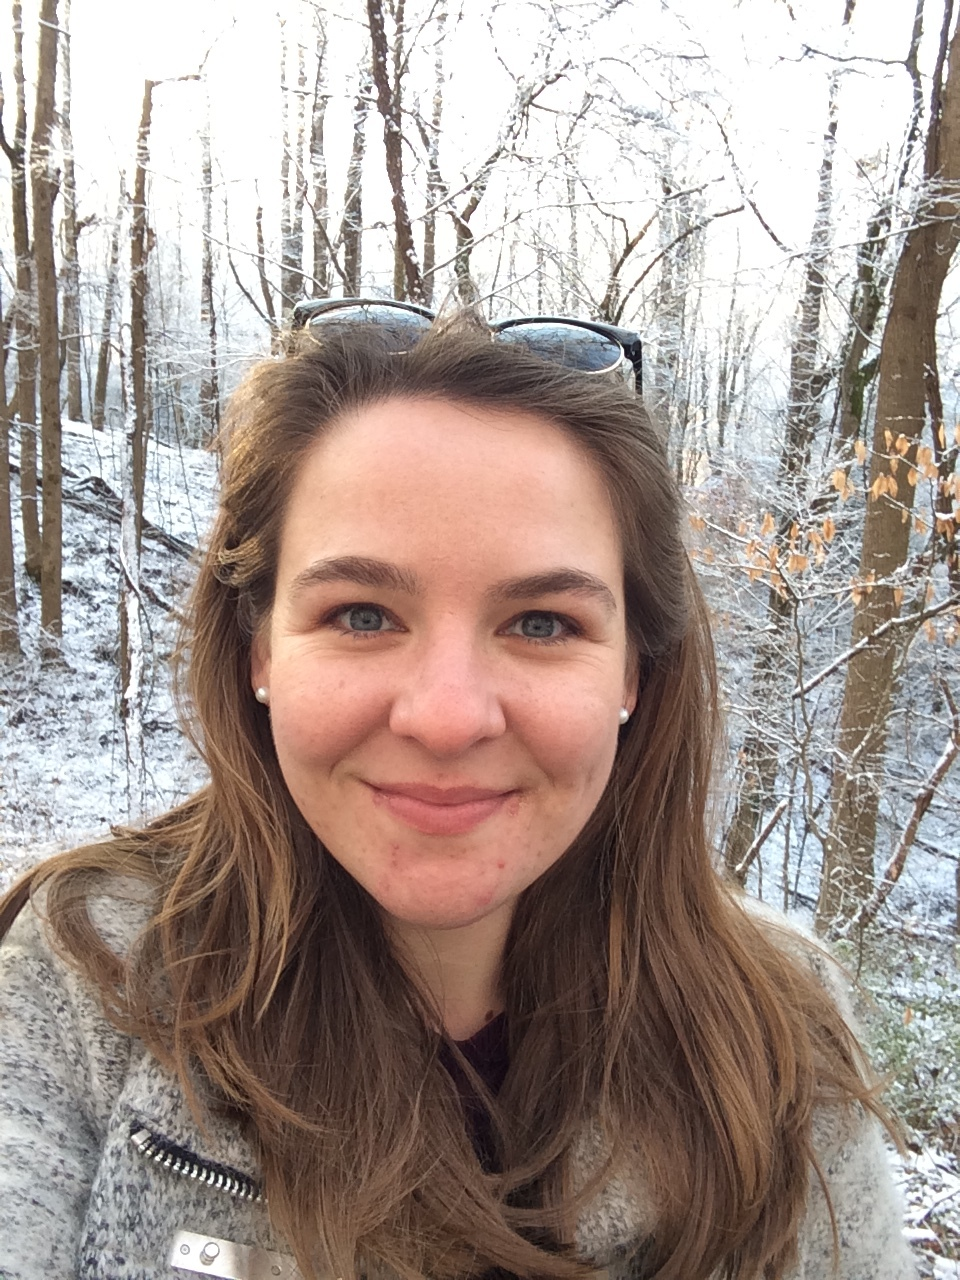 Elena Schuch - Member, Doctoral Student, Counseling Psychology